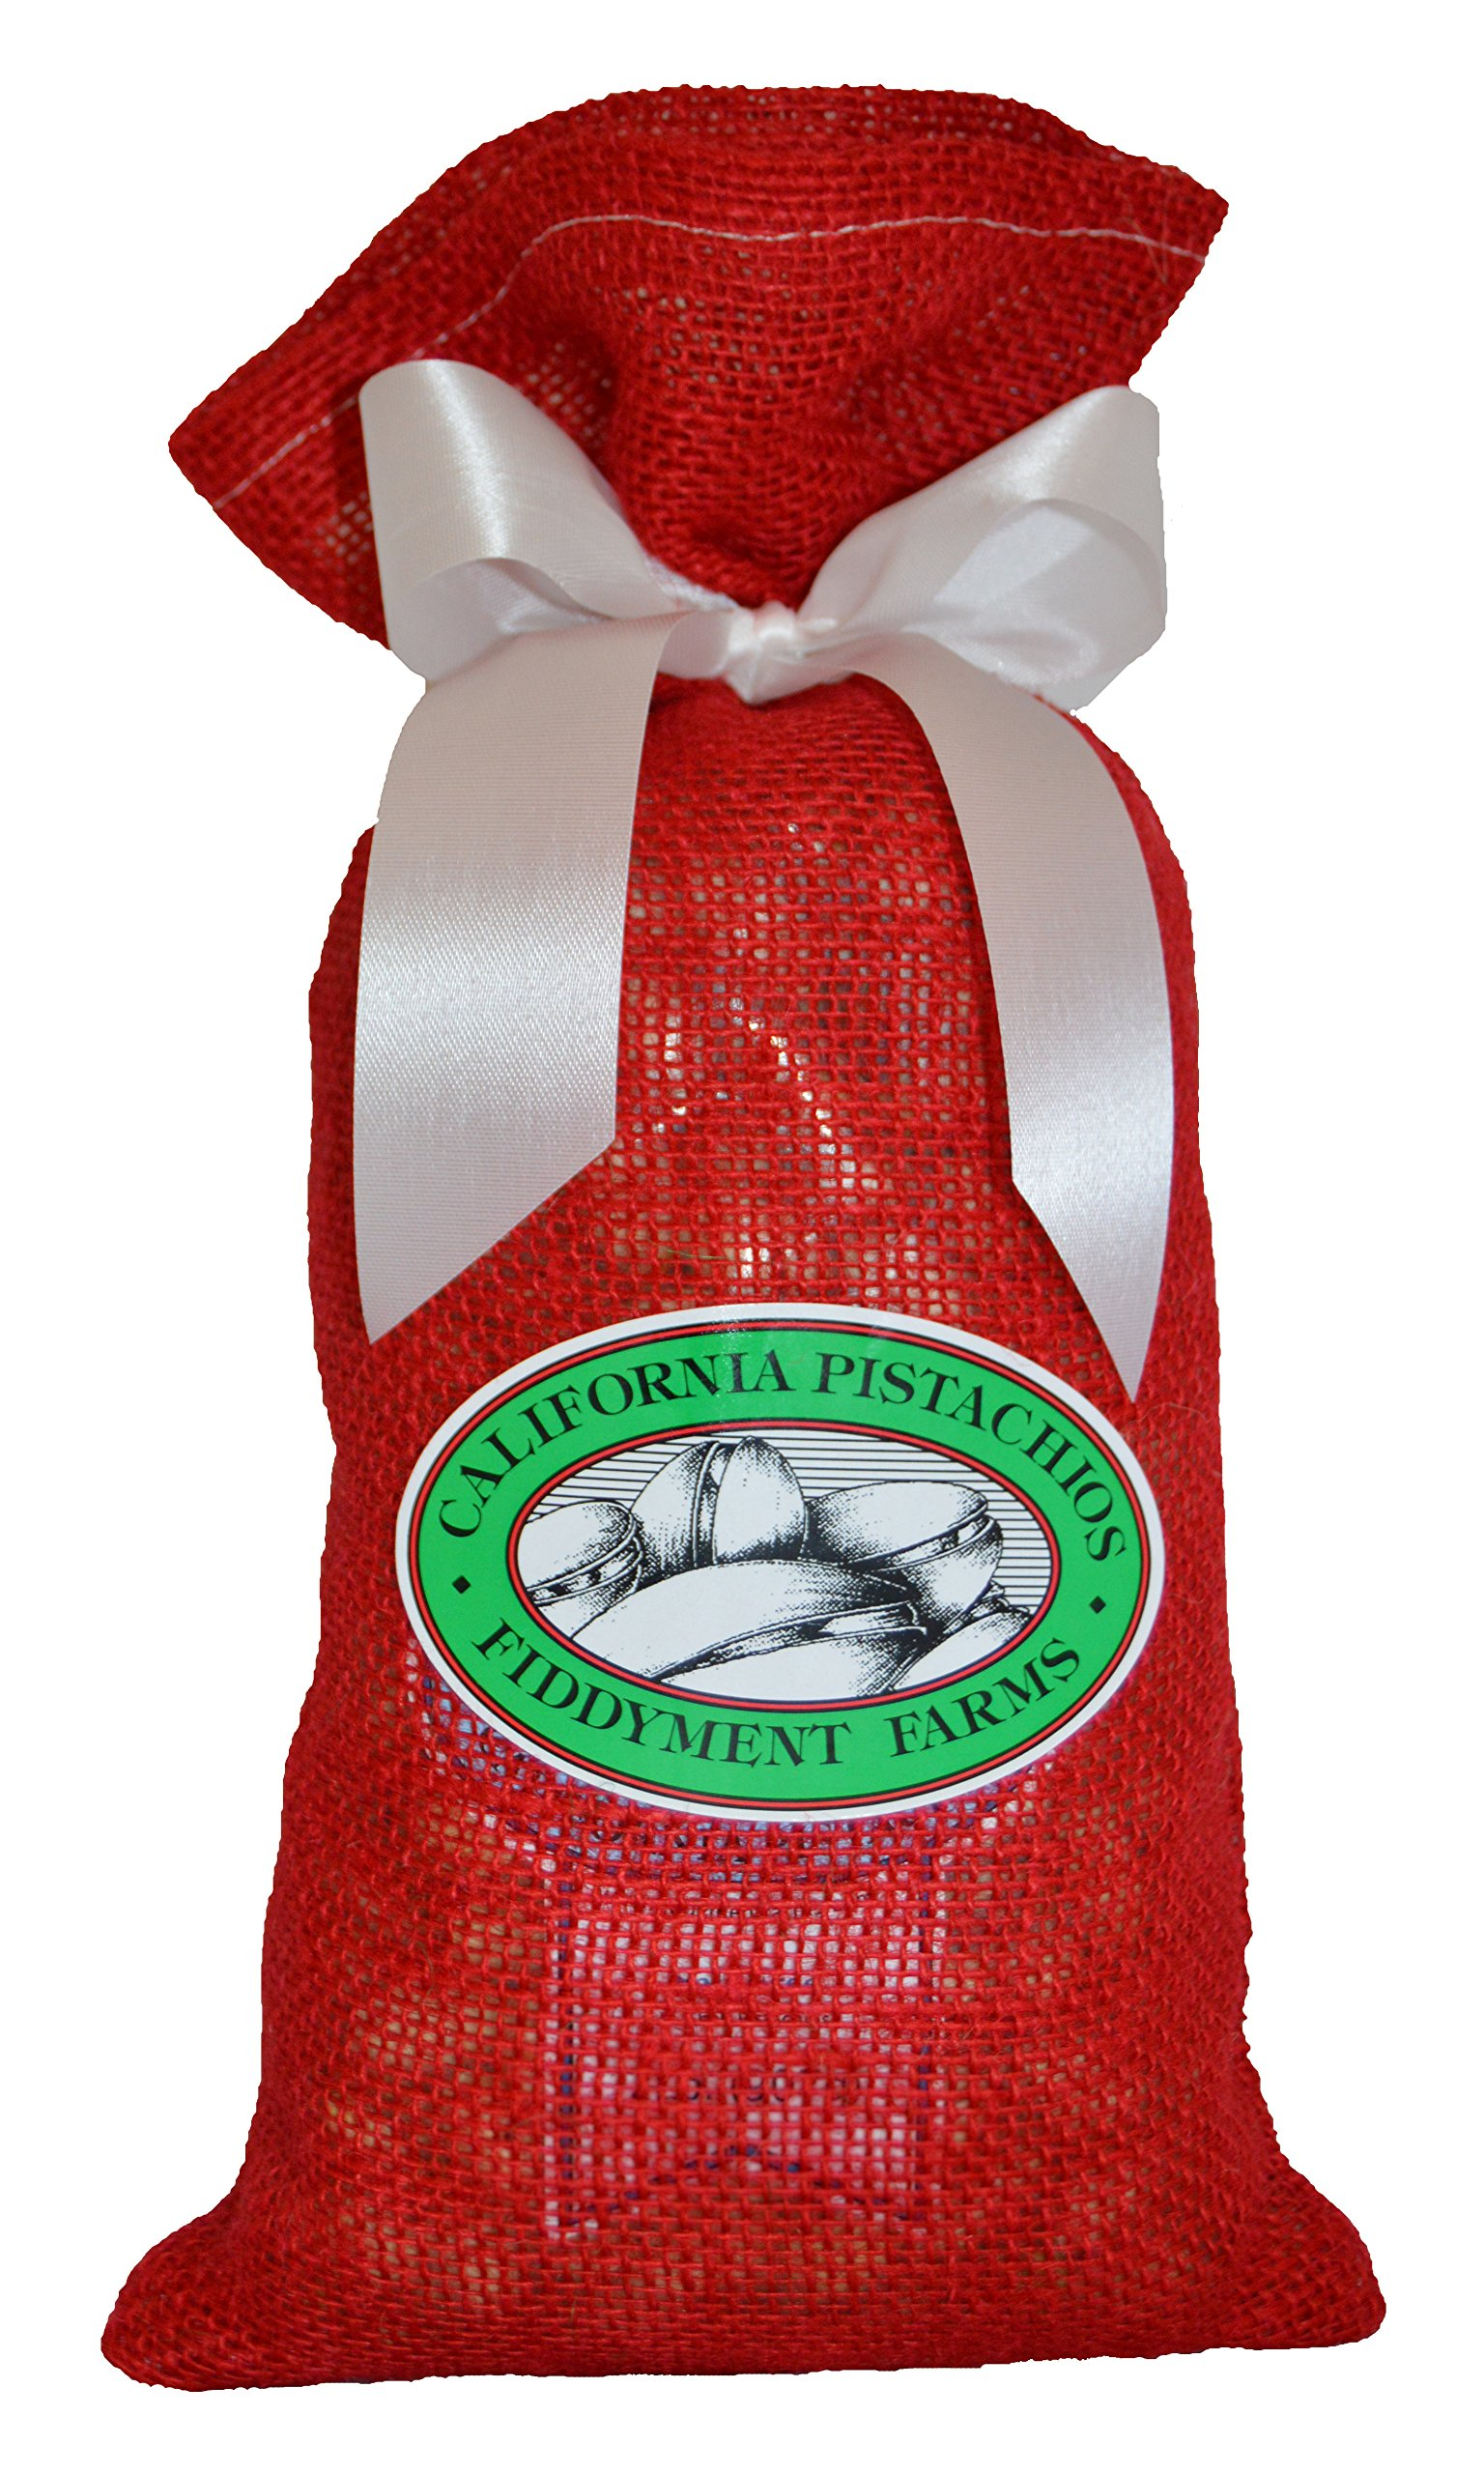 2 Lb. Salt Free Pistachios in Red Burlap Bag